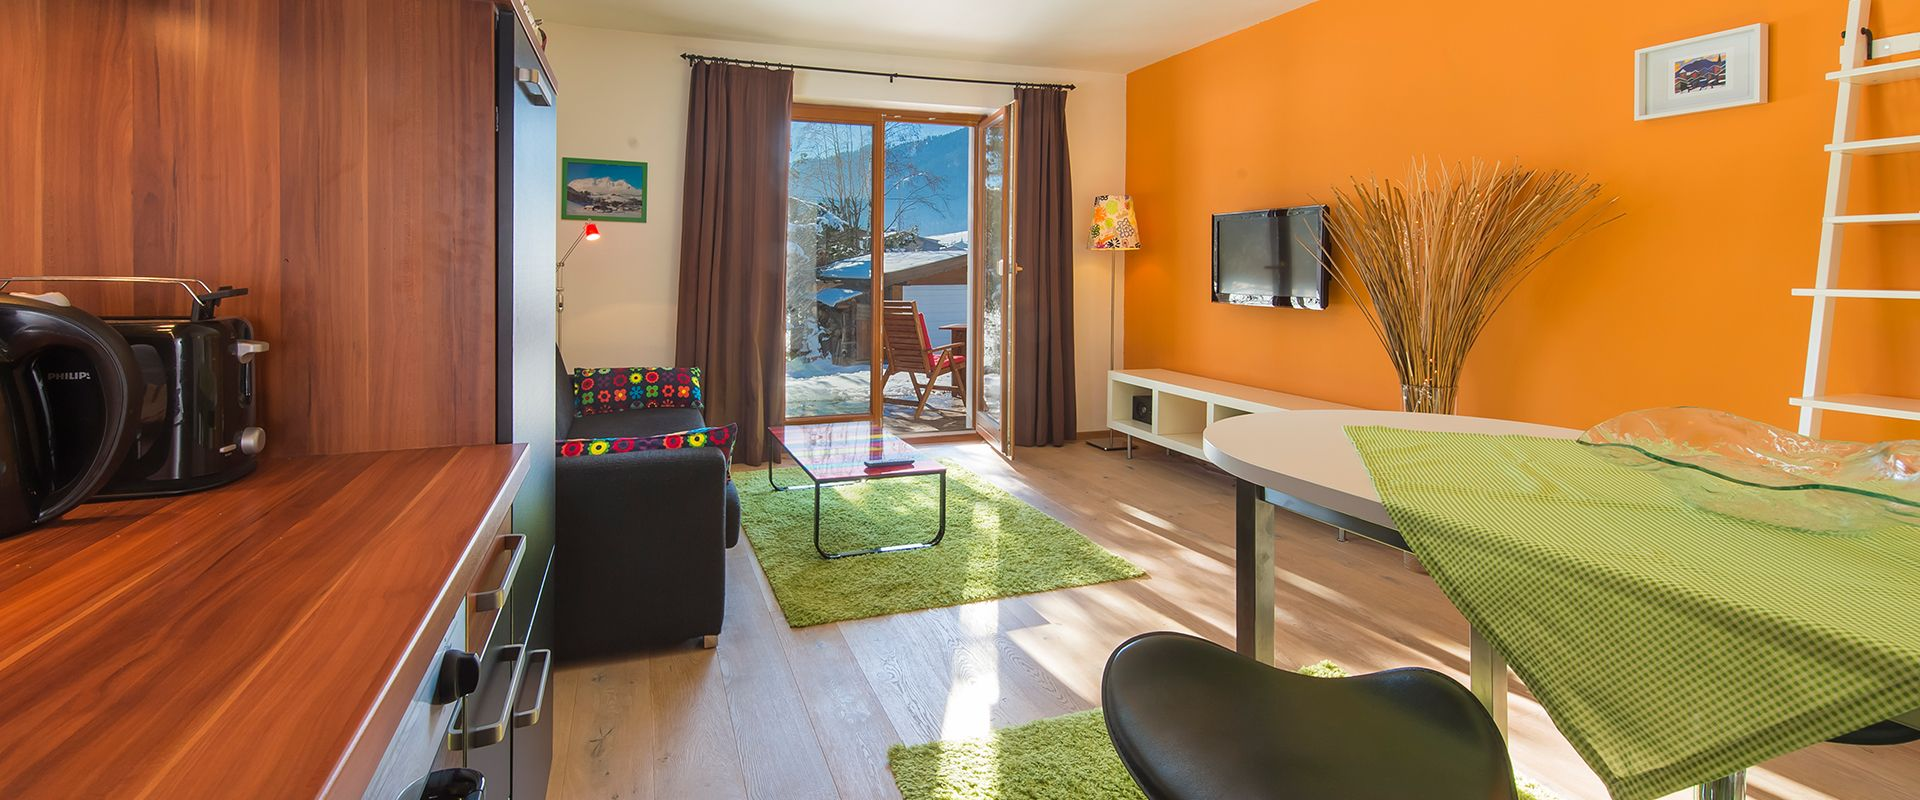 Urlaub In Kitzbuehel Appartement 5